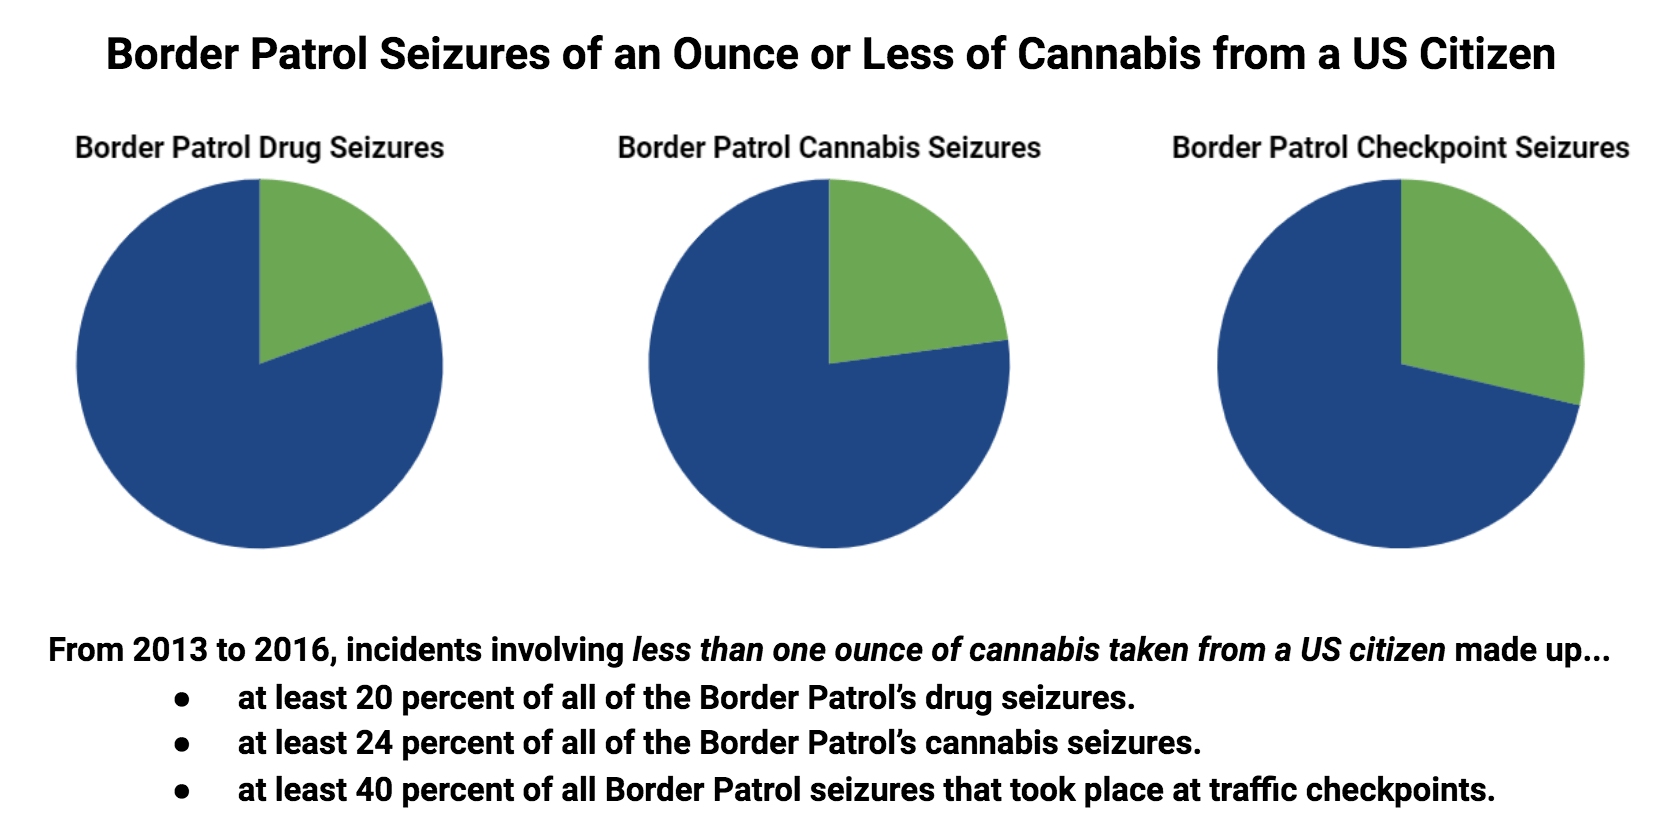 Who Gets Busted at the Border for Cannabis? Frequently, US Citizens